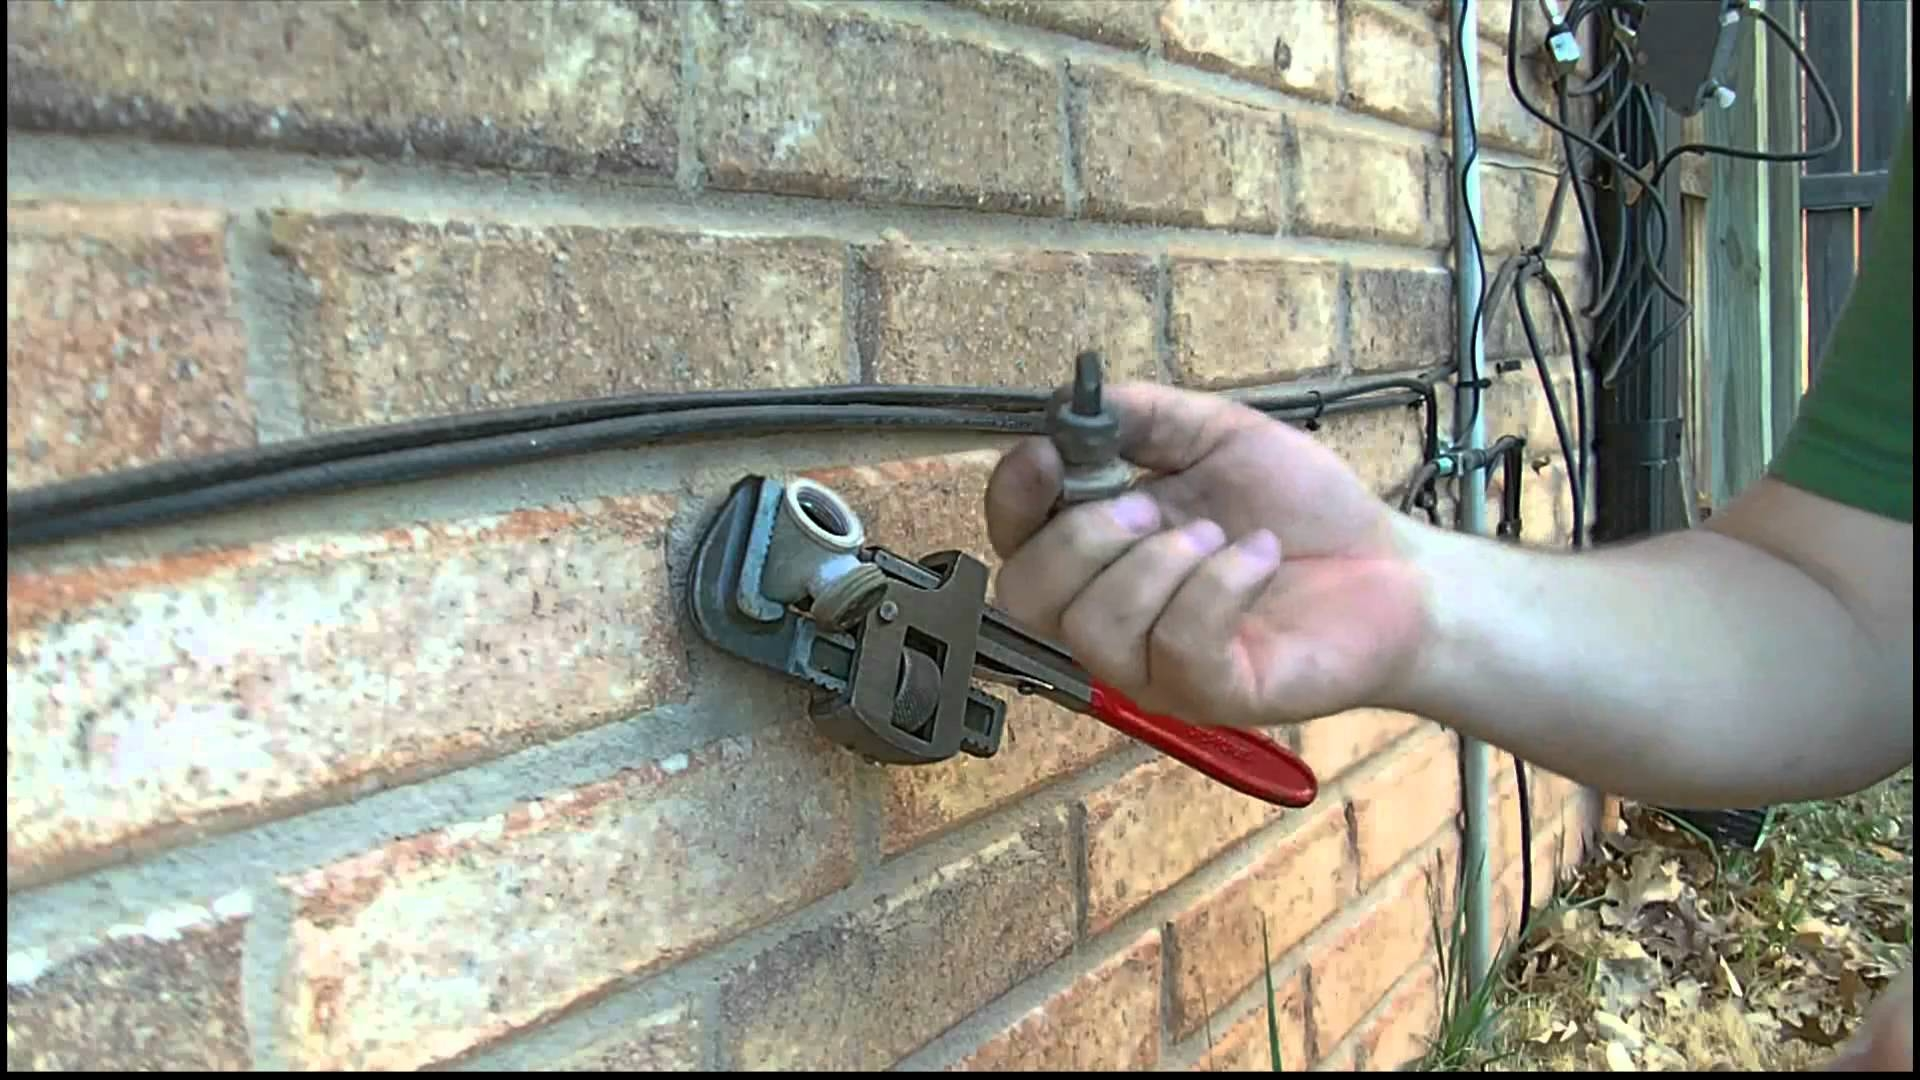 repairing an old outdoor faucet repairing an old outdoor faucet diy repair your leaky sillcock outside water faucet for under 1920 x 1080